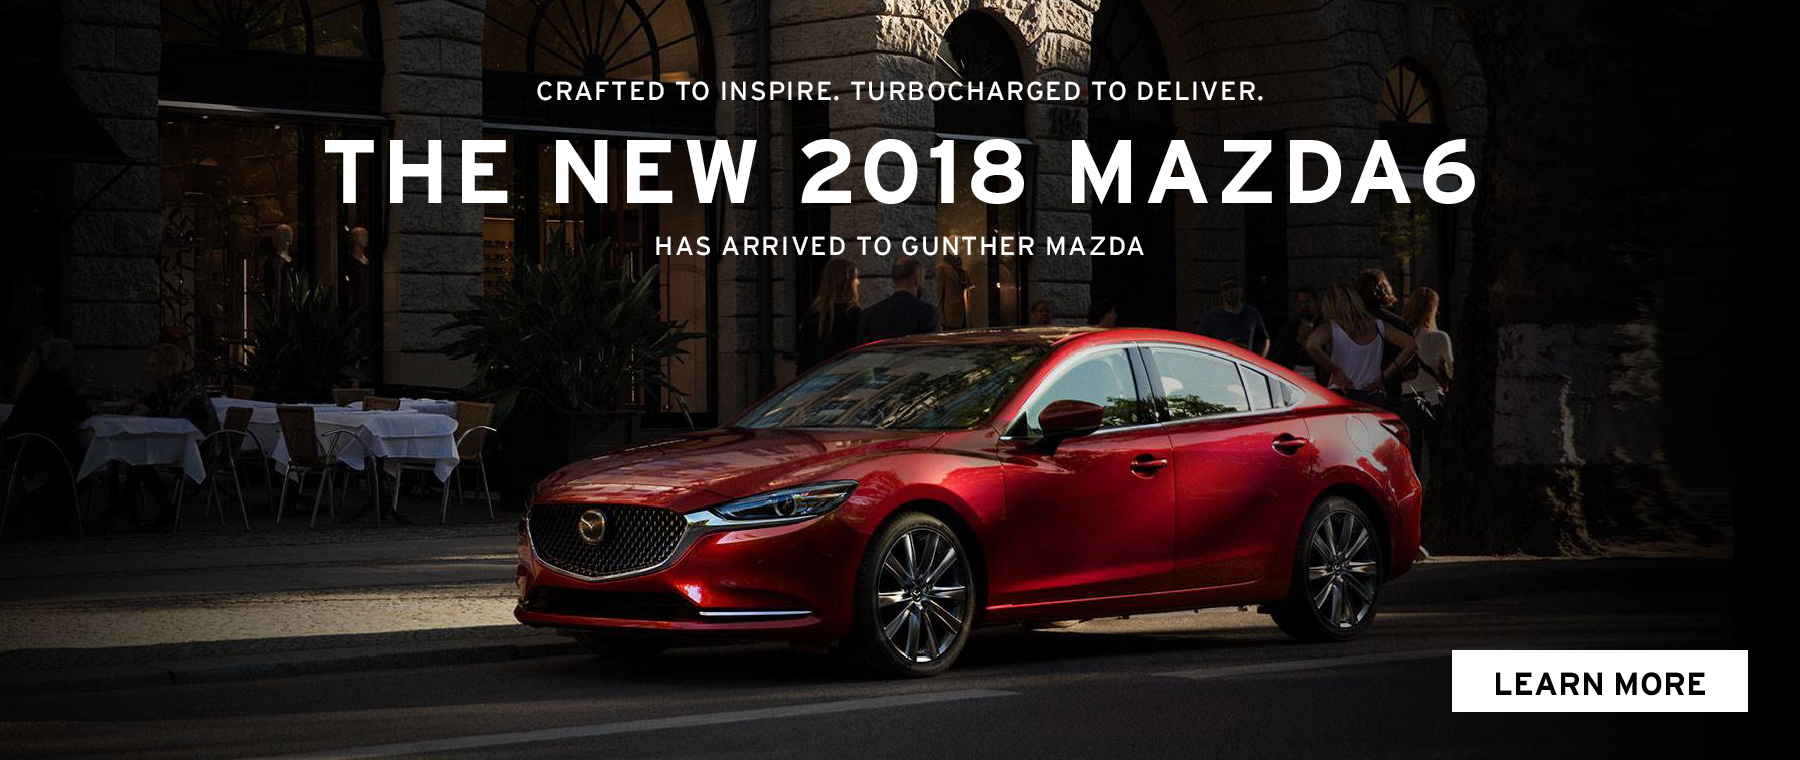 Crafted to inspire. Turbocharged to deliver. The new 2018 Mazda6. Click here to learn more.